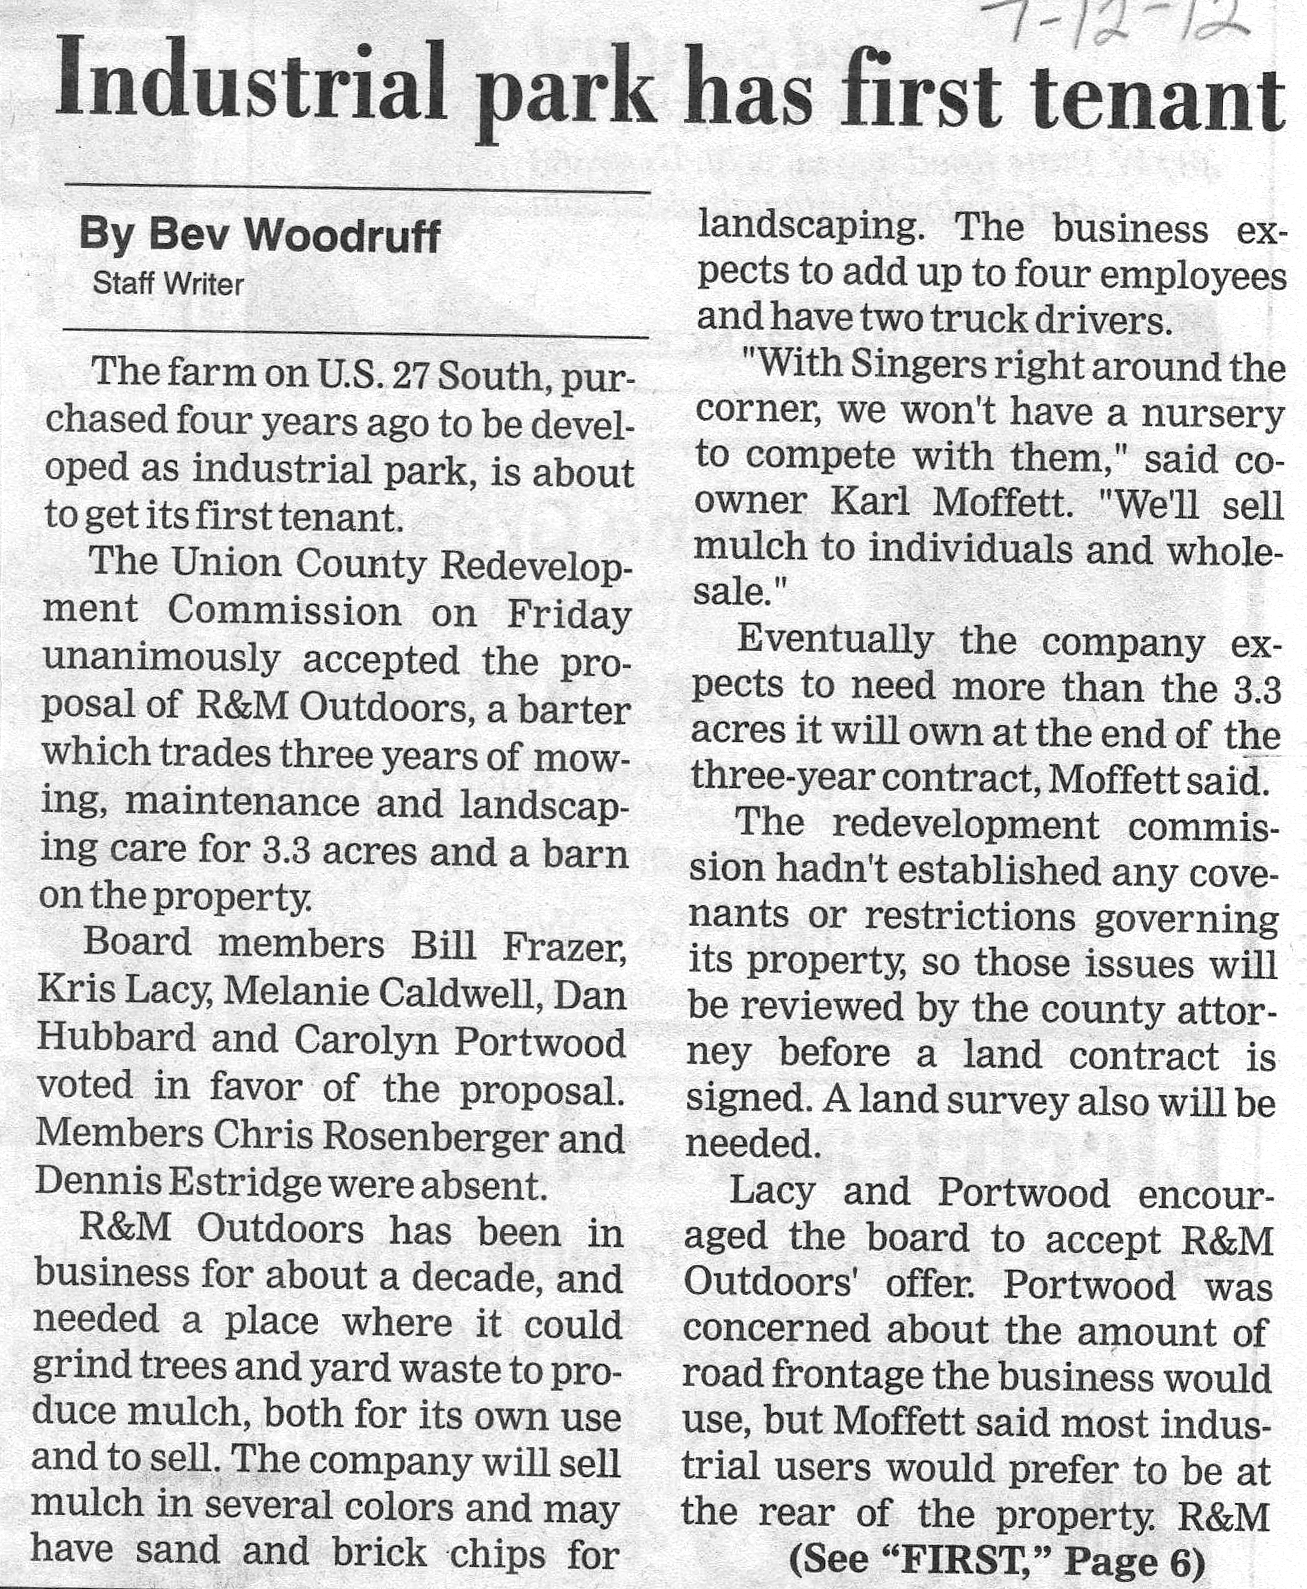 Industrial Park Has First Tenant - Liberty Herald July 12, 2012